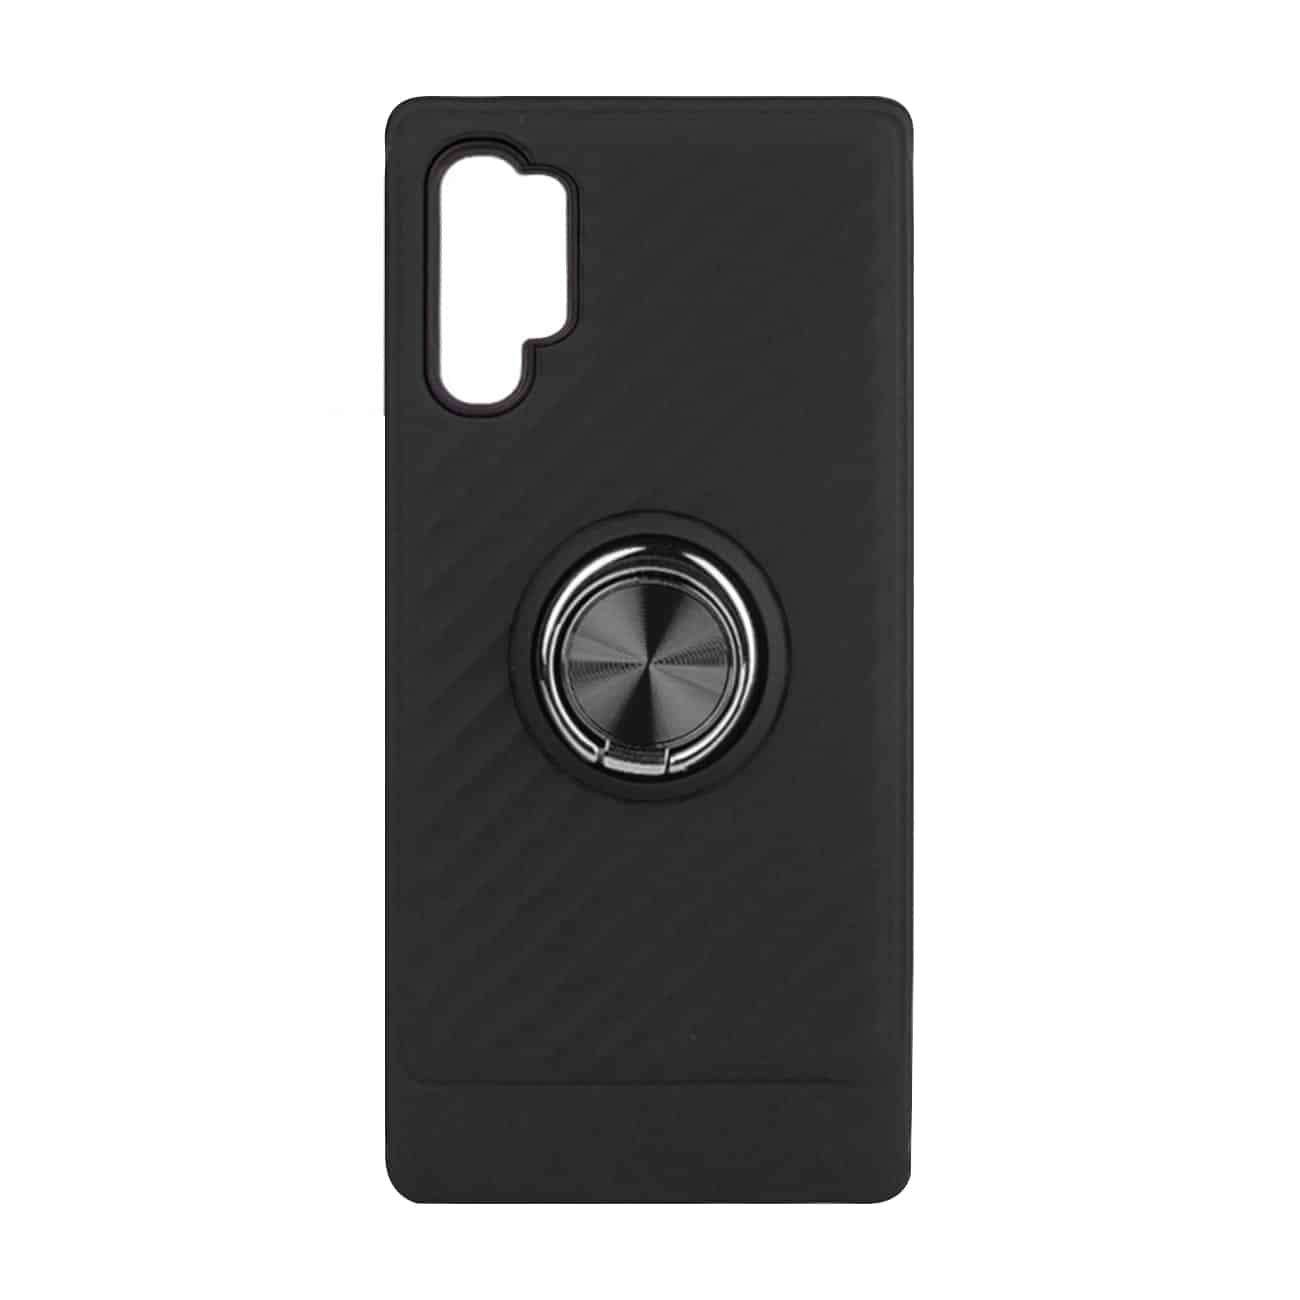 SAMSUNG GALAXY NOTE 10 PLUS Case with Ring Holder InBlack